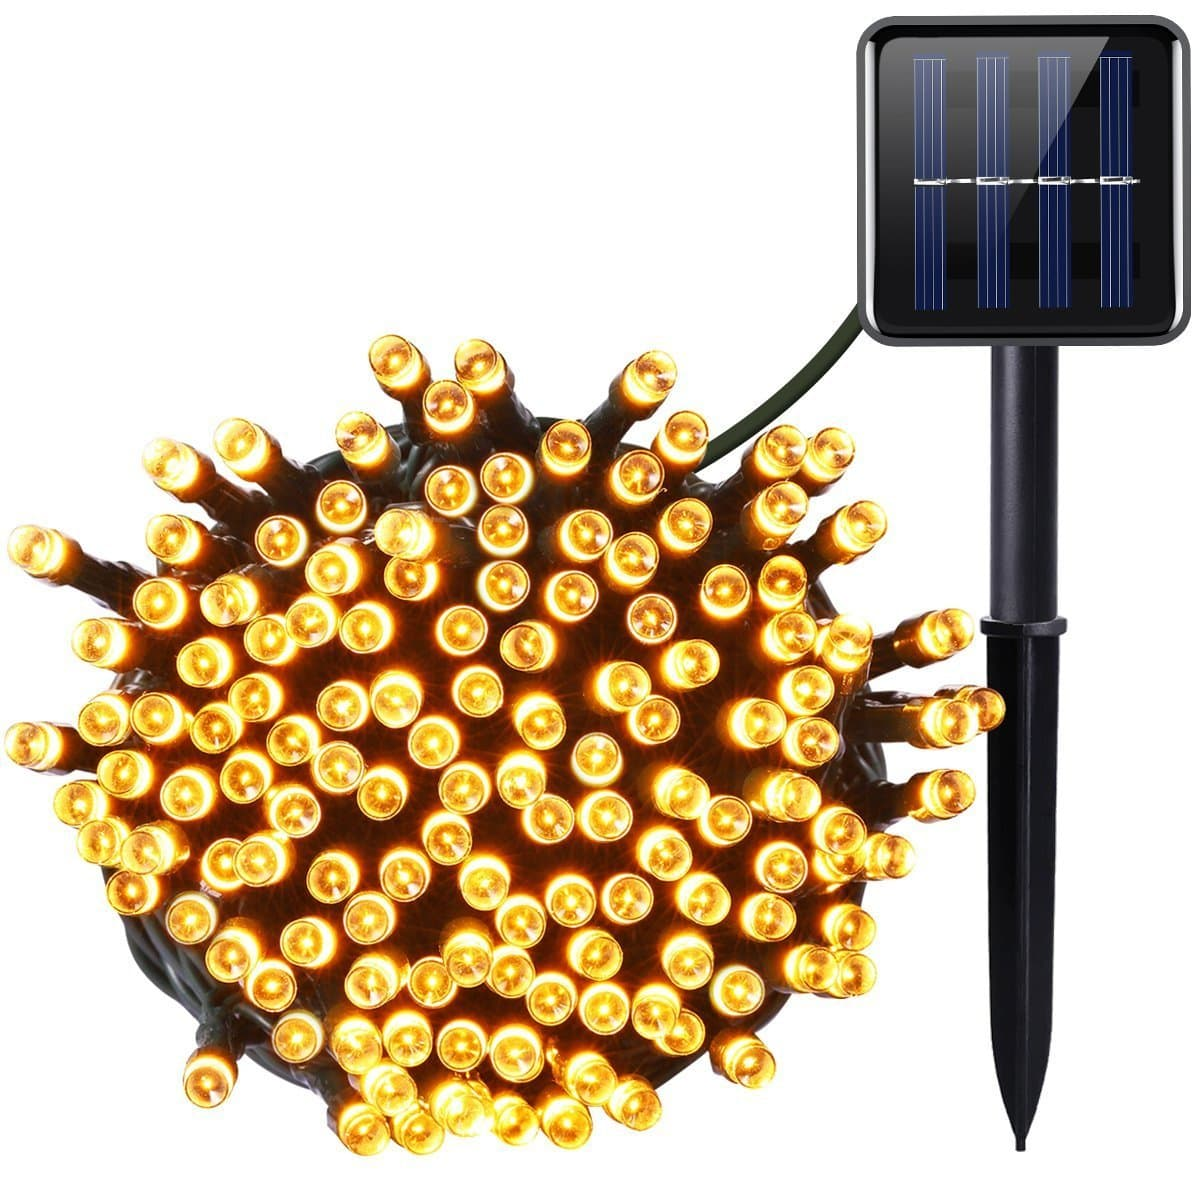 SOLAR LED FAIRY LIGHTS 120 WARM WHITE